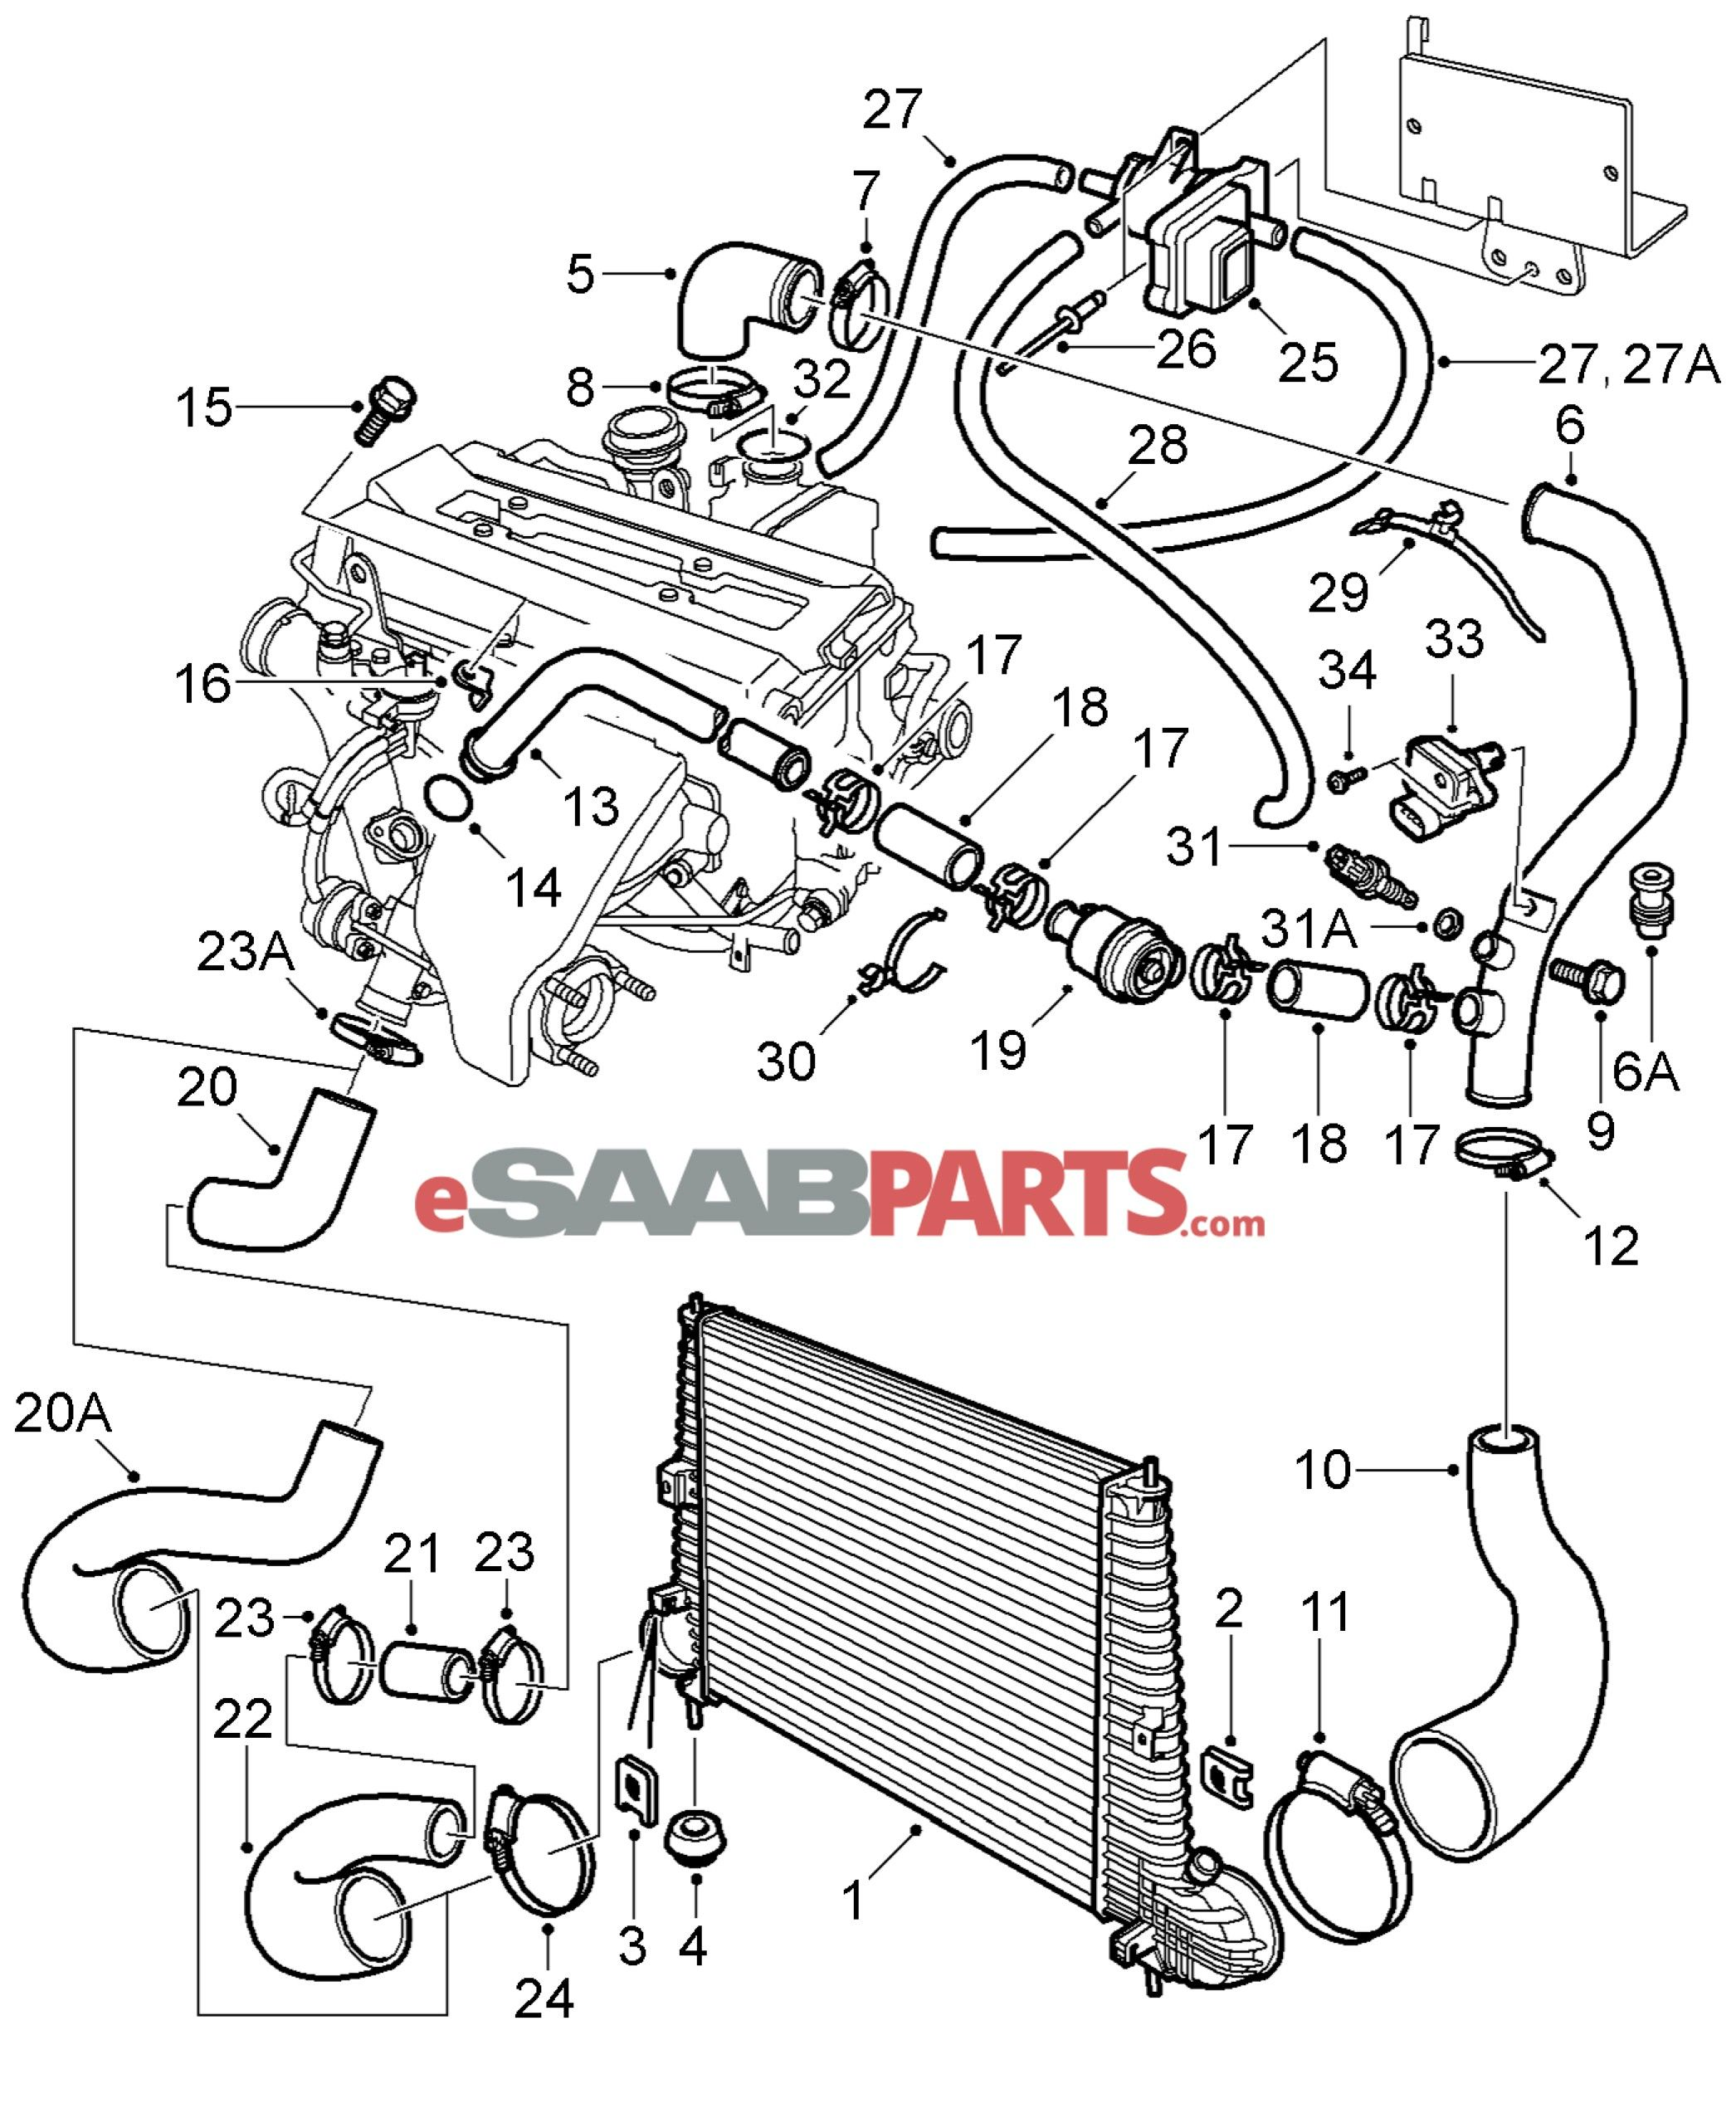 medium resolution of 2005 saab 9 5 engine part diagram basic guide wiring diagram u2022 rh hydrasystemsllc com 99 saab 9 5 specs 99 saab 9 5 specs